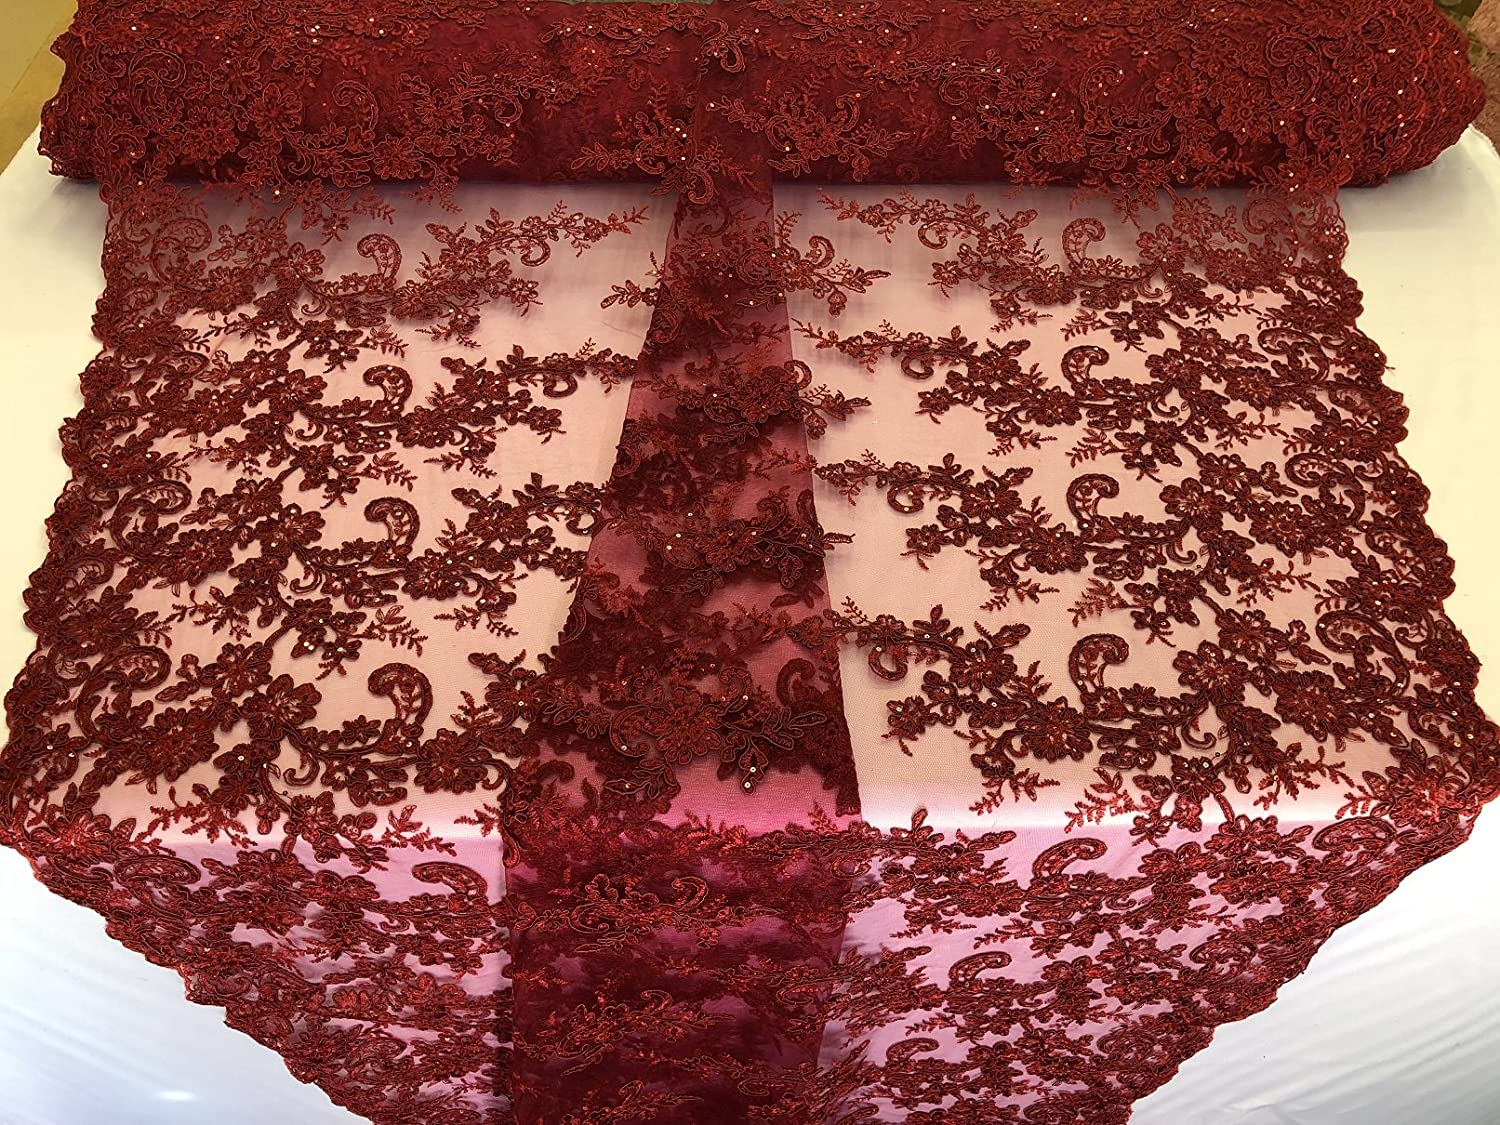 Burgundy Flower Plant Lace Iridescent Sequins Decor Fabric Elegant Embroidered Cluster Flower Leaf Mesh Elegant Lace Fabric Sold by The Yard